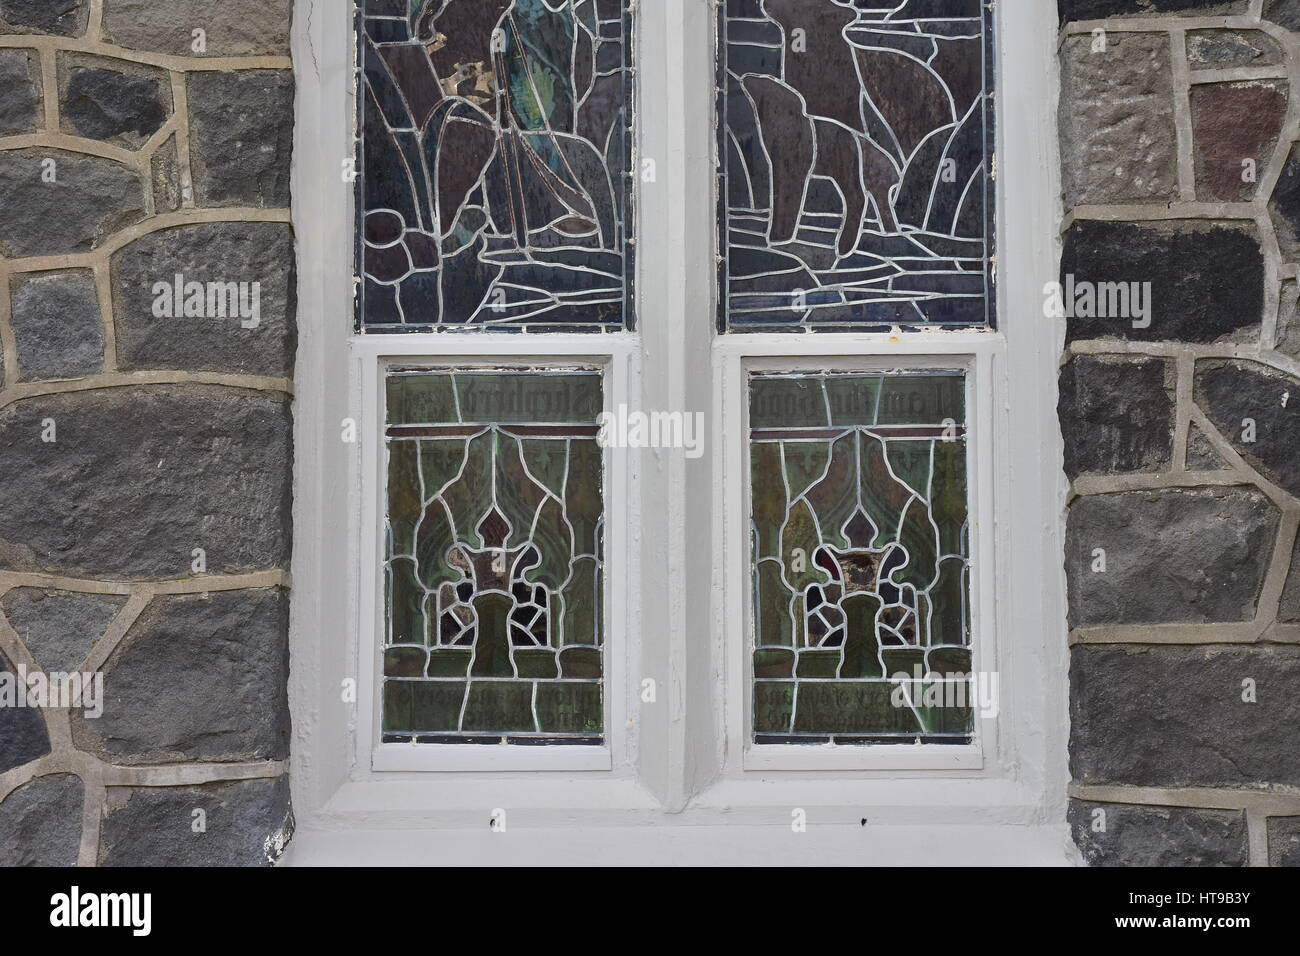 Detail of stained glass window panes in white wooden frame on stone ...